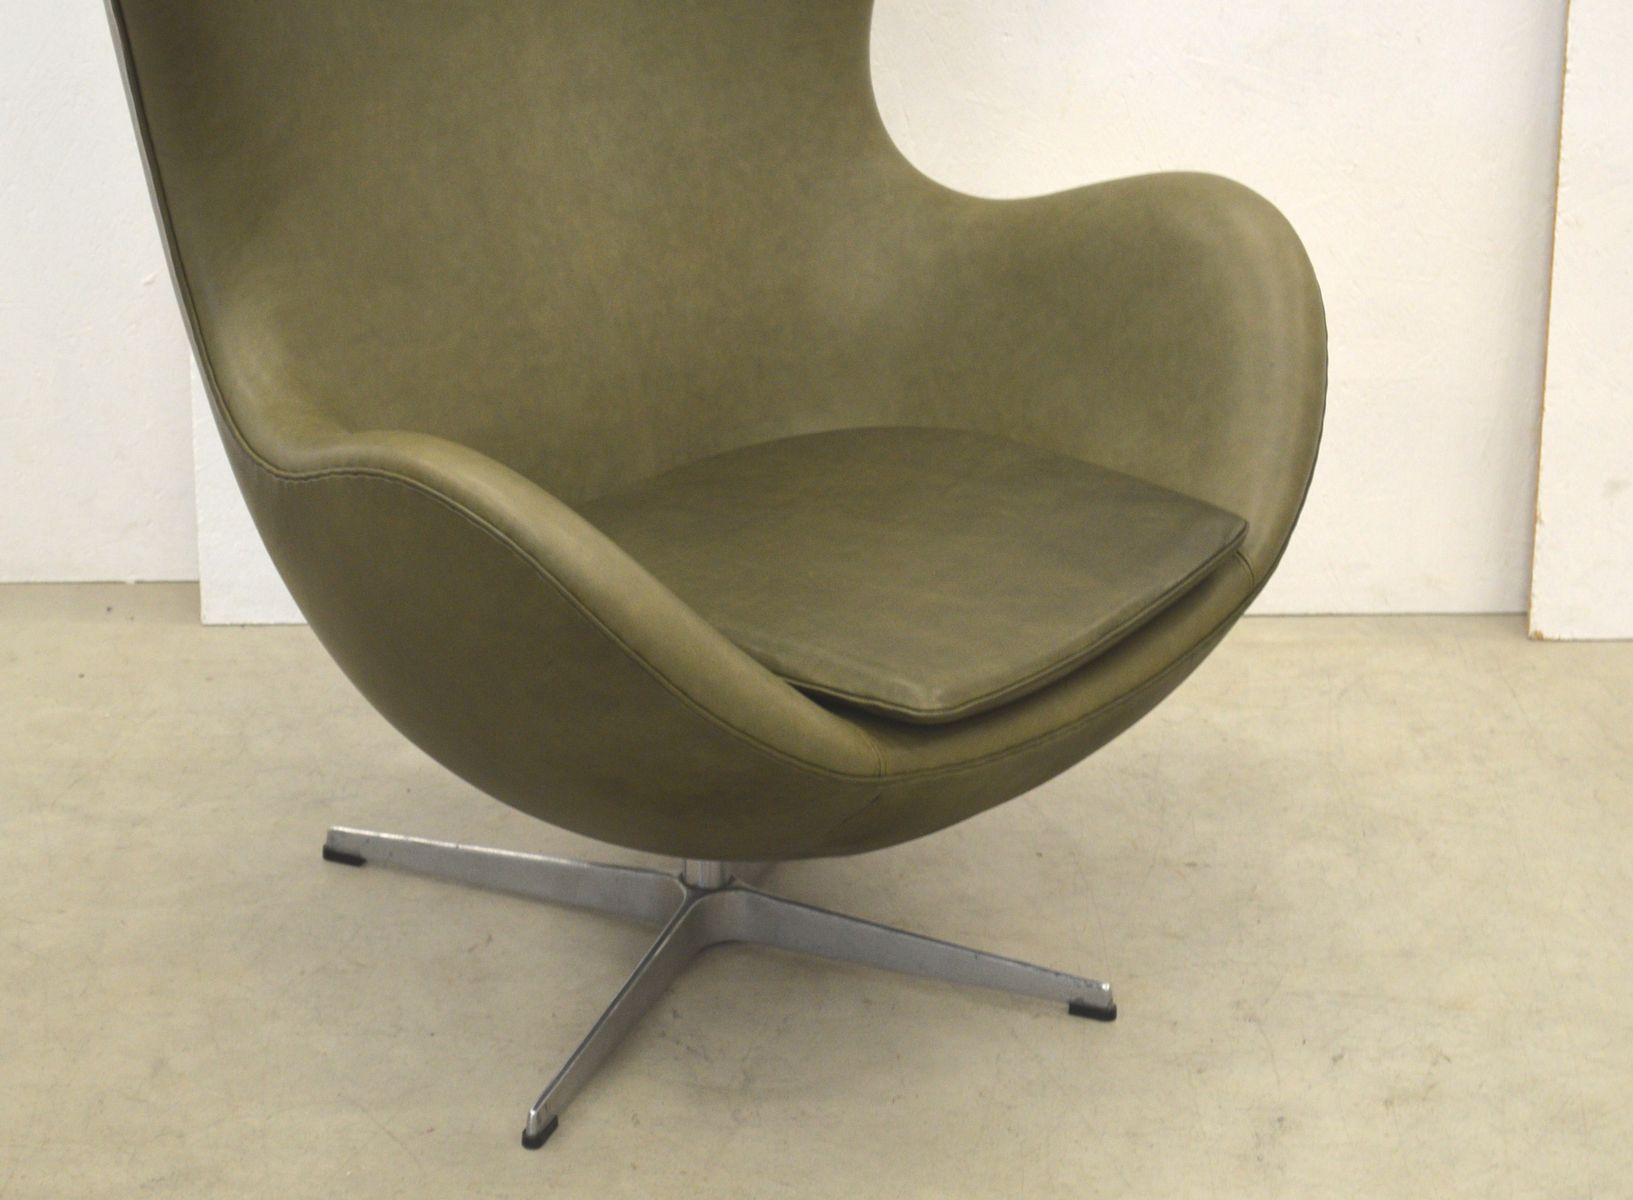 khaki green egg chair by arne jacobsen for fritz hansen 1970s for sale at pamono. Black Bedroom Furniture Sets. Home Design Ideas